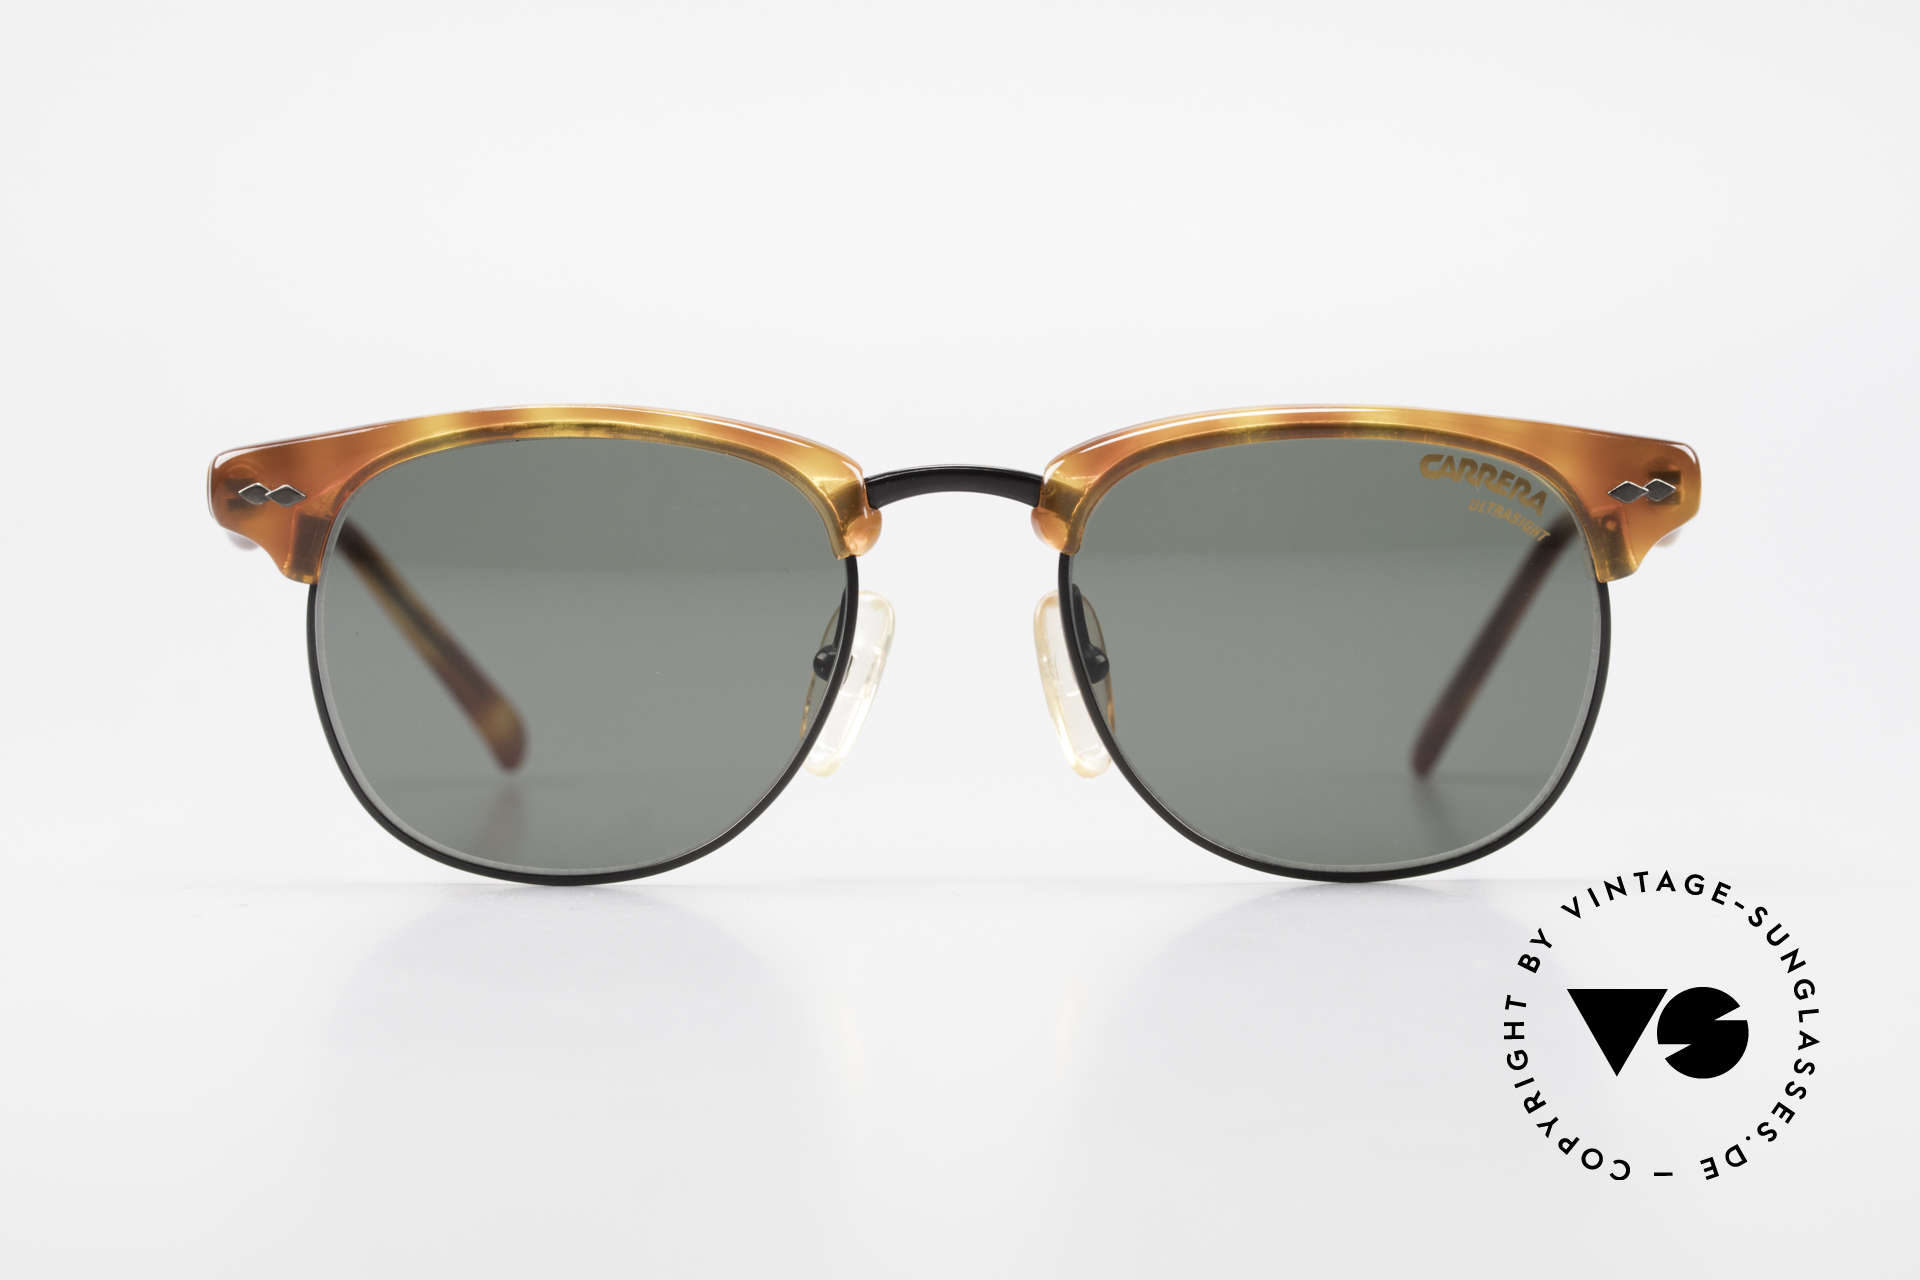 Carrera 5624 Clubmaster Shape Sunglasses, a real classic: famous 'panto'-design (simply elegant), Made for Men